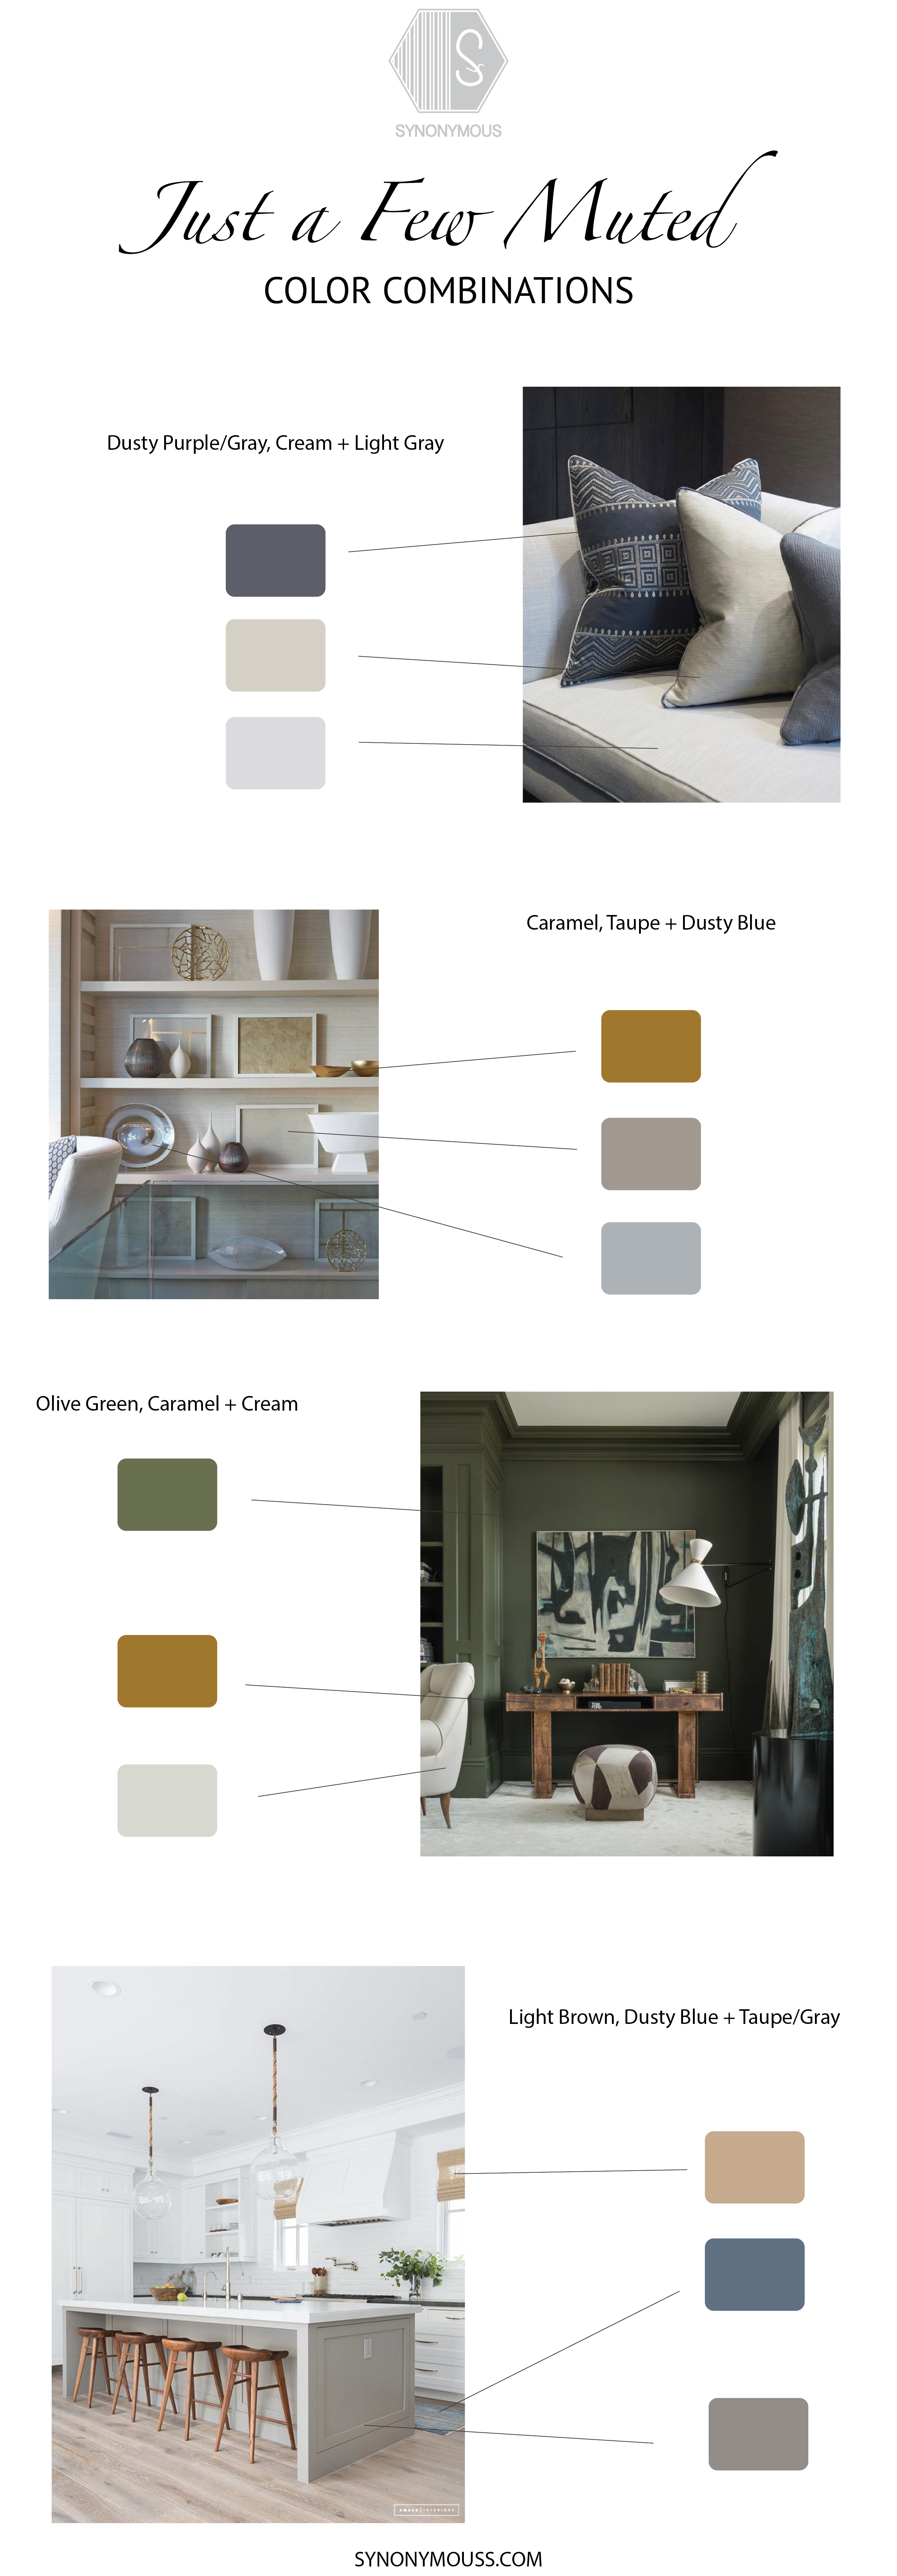 Muted Color Combinations - SYNONYMOUS